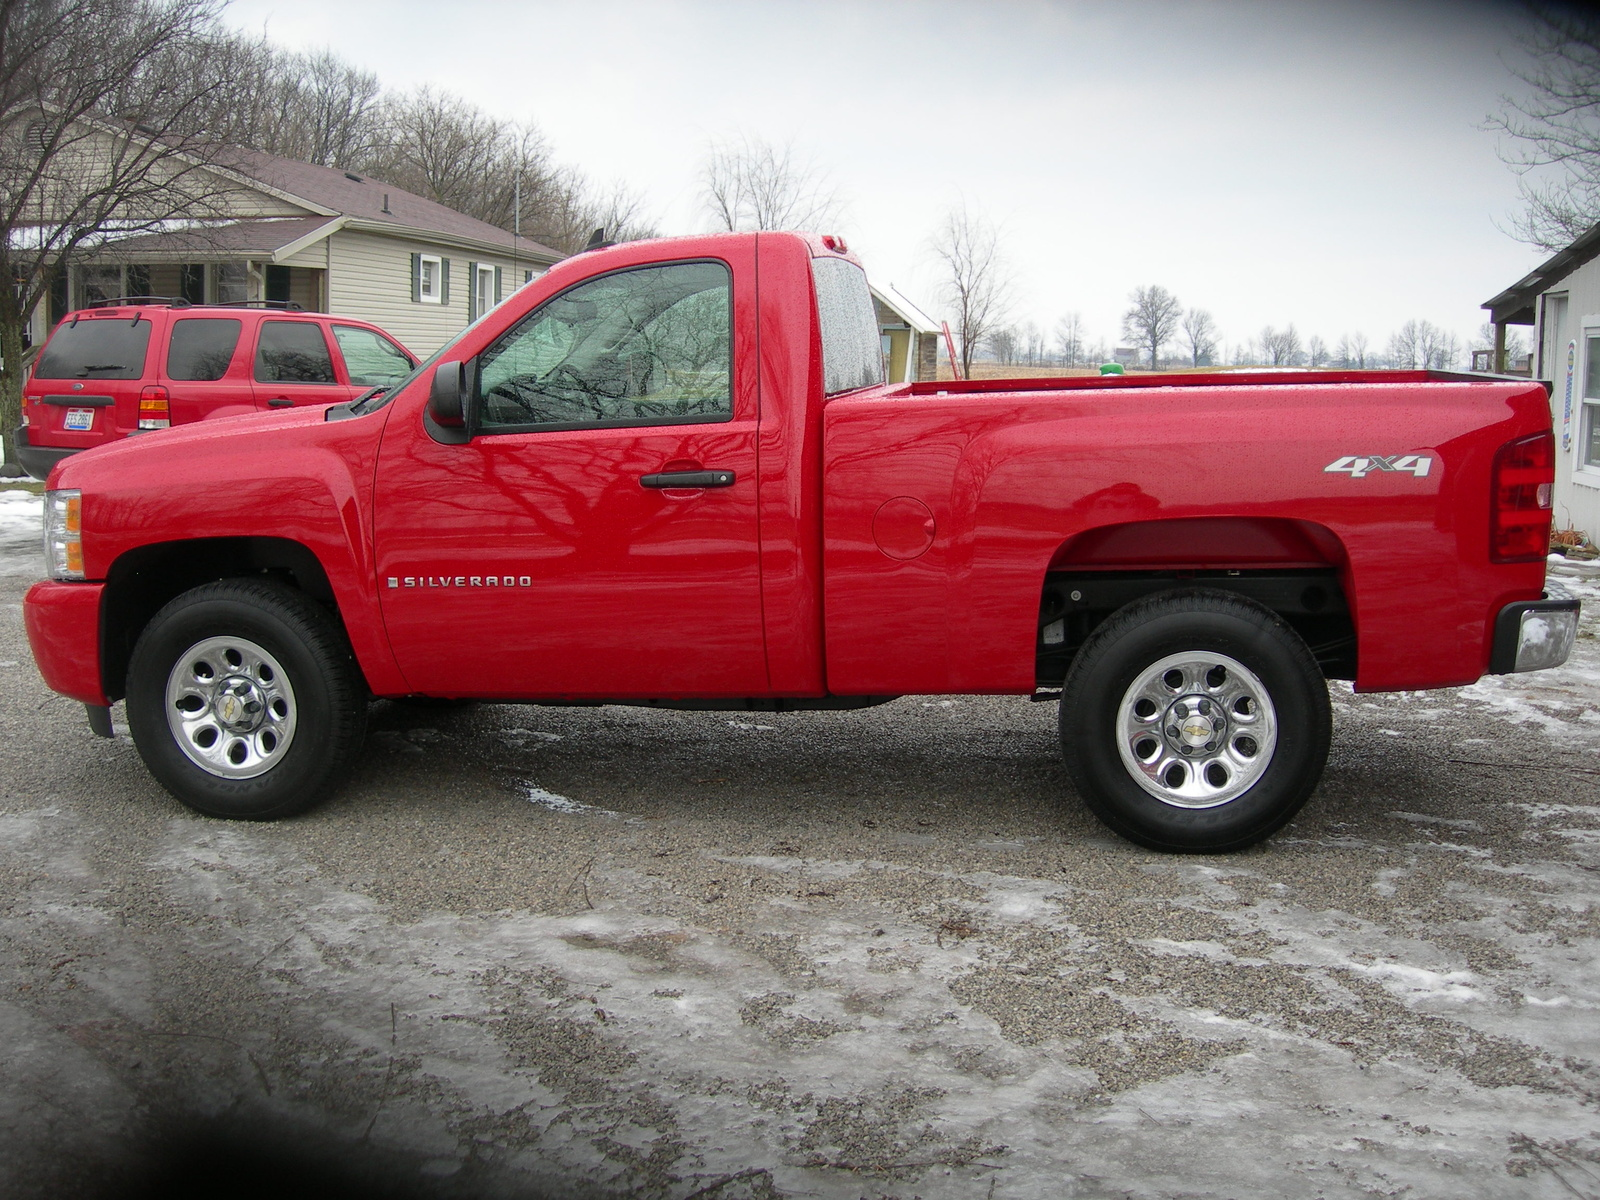 2008 chevrolet silverado 1500 22 inch rims bed liner autos post. Black Bedroom Furniture Sets. Home Design Ideas